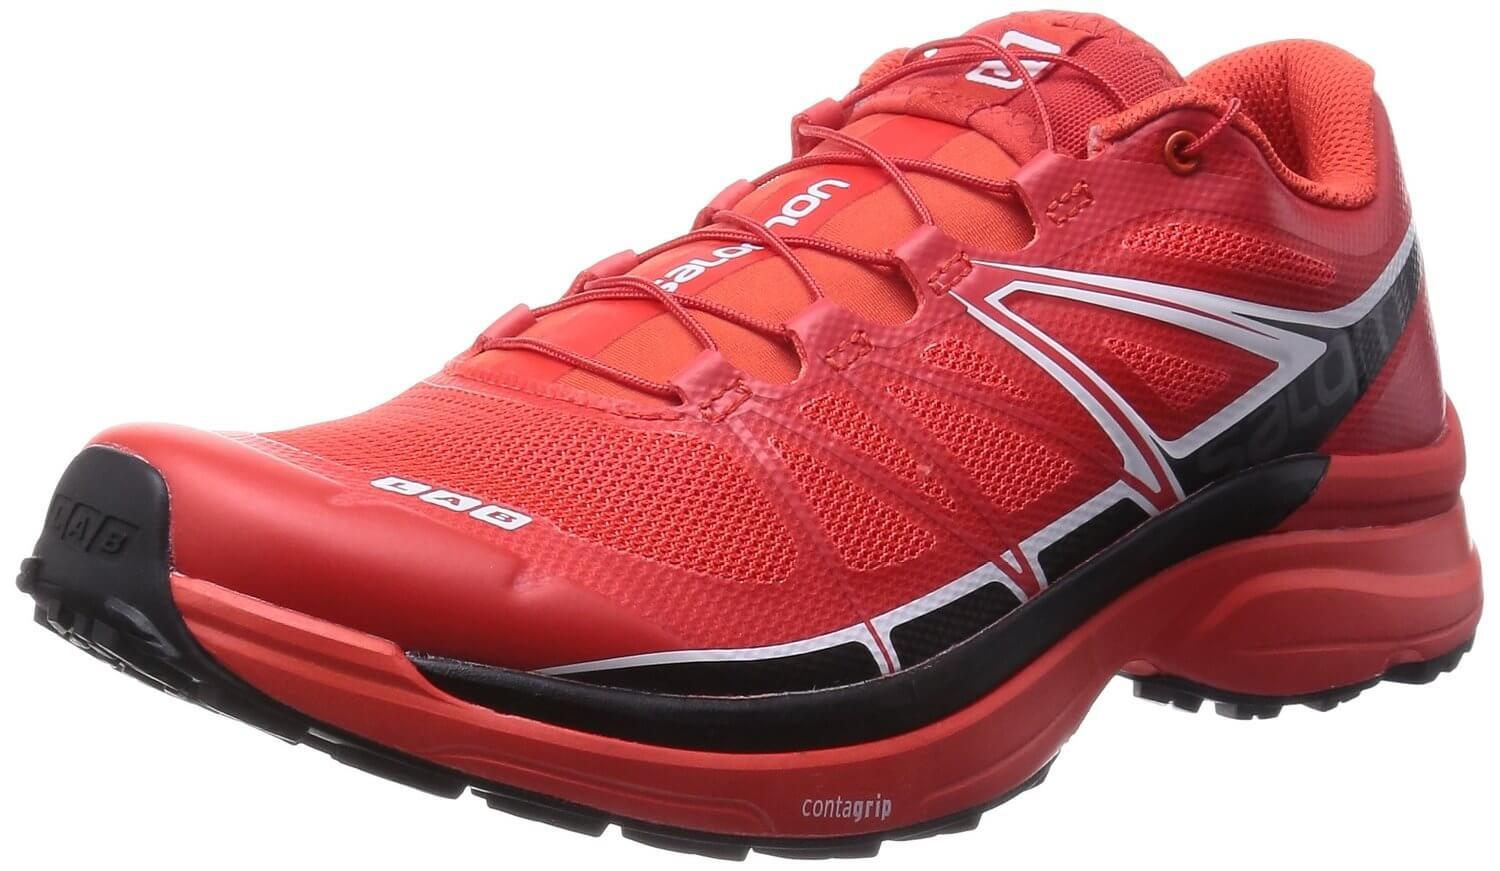 The Salomon S-Lab Wings is a brilliantly designed trail shoe with multiple uses.